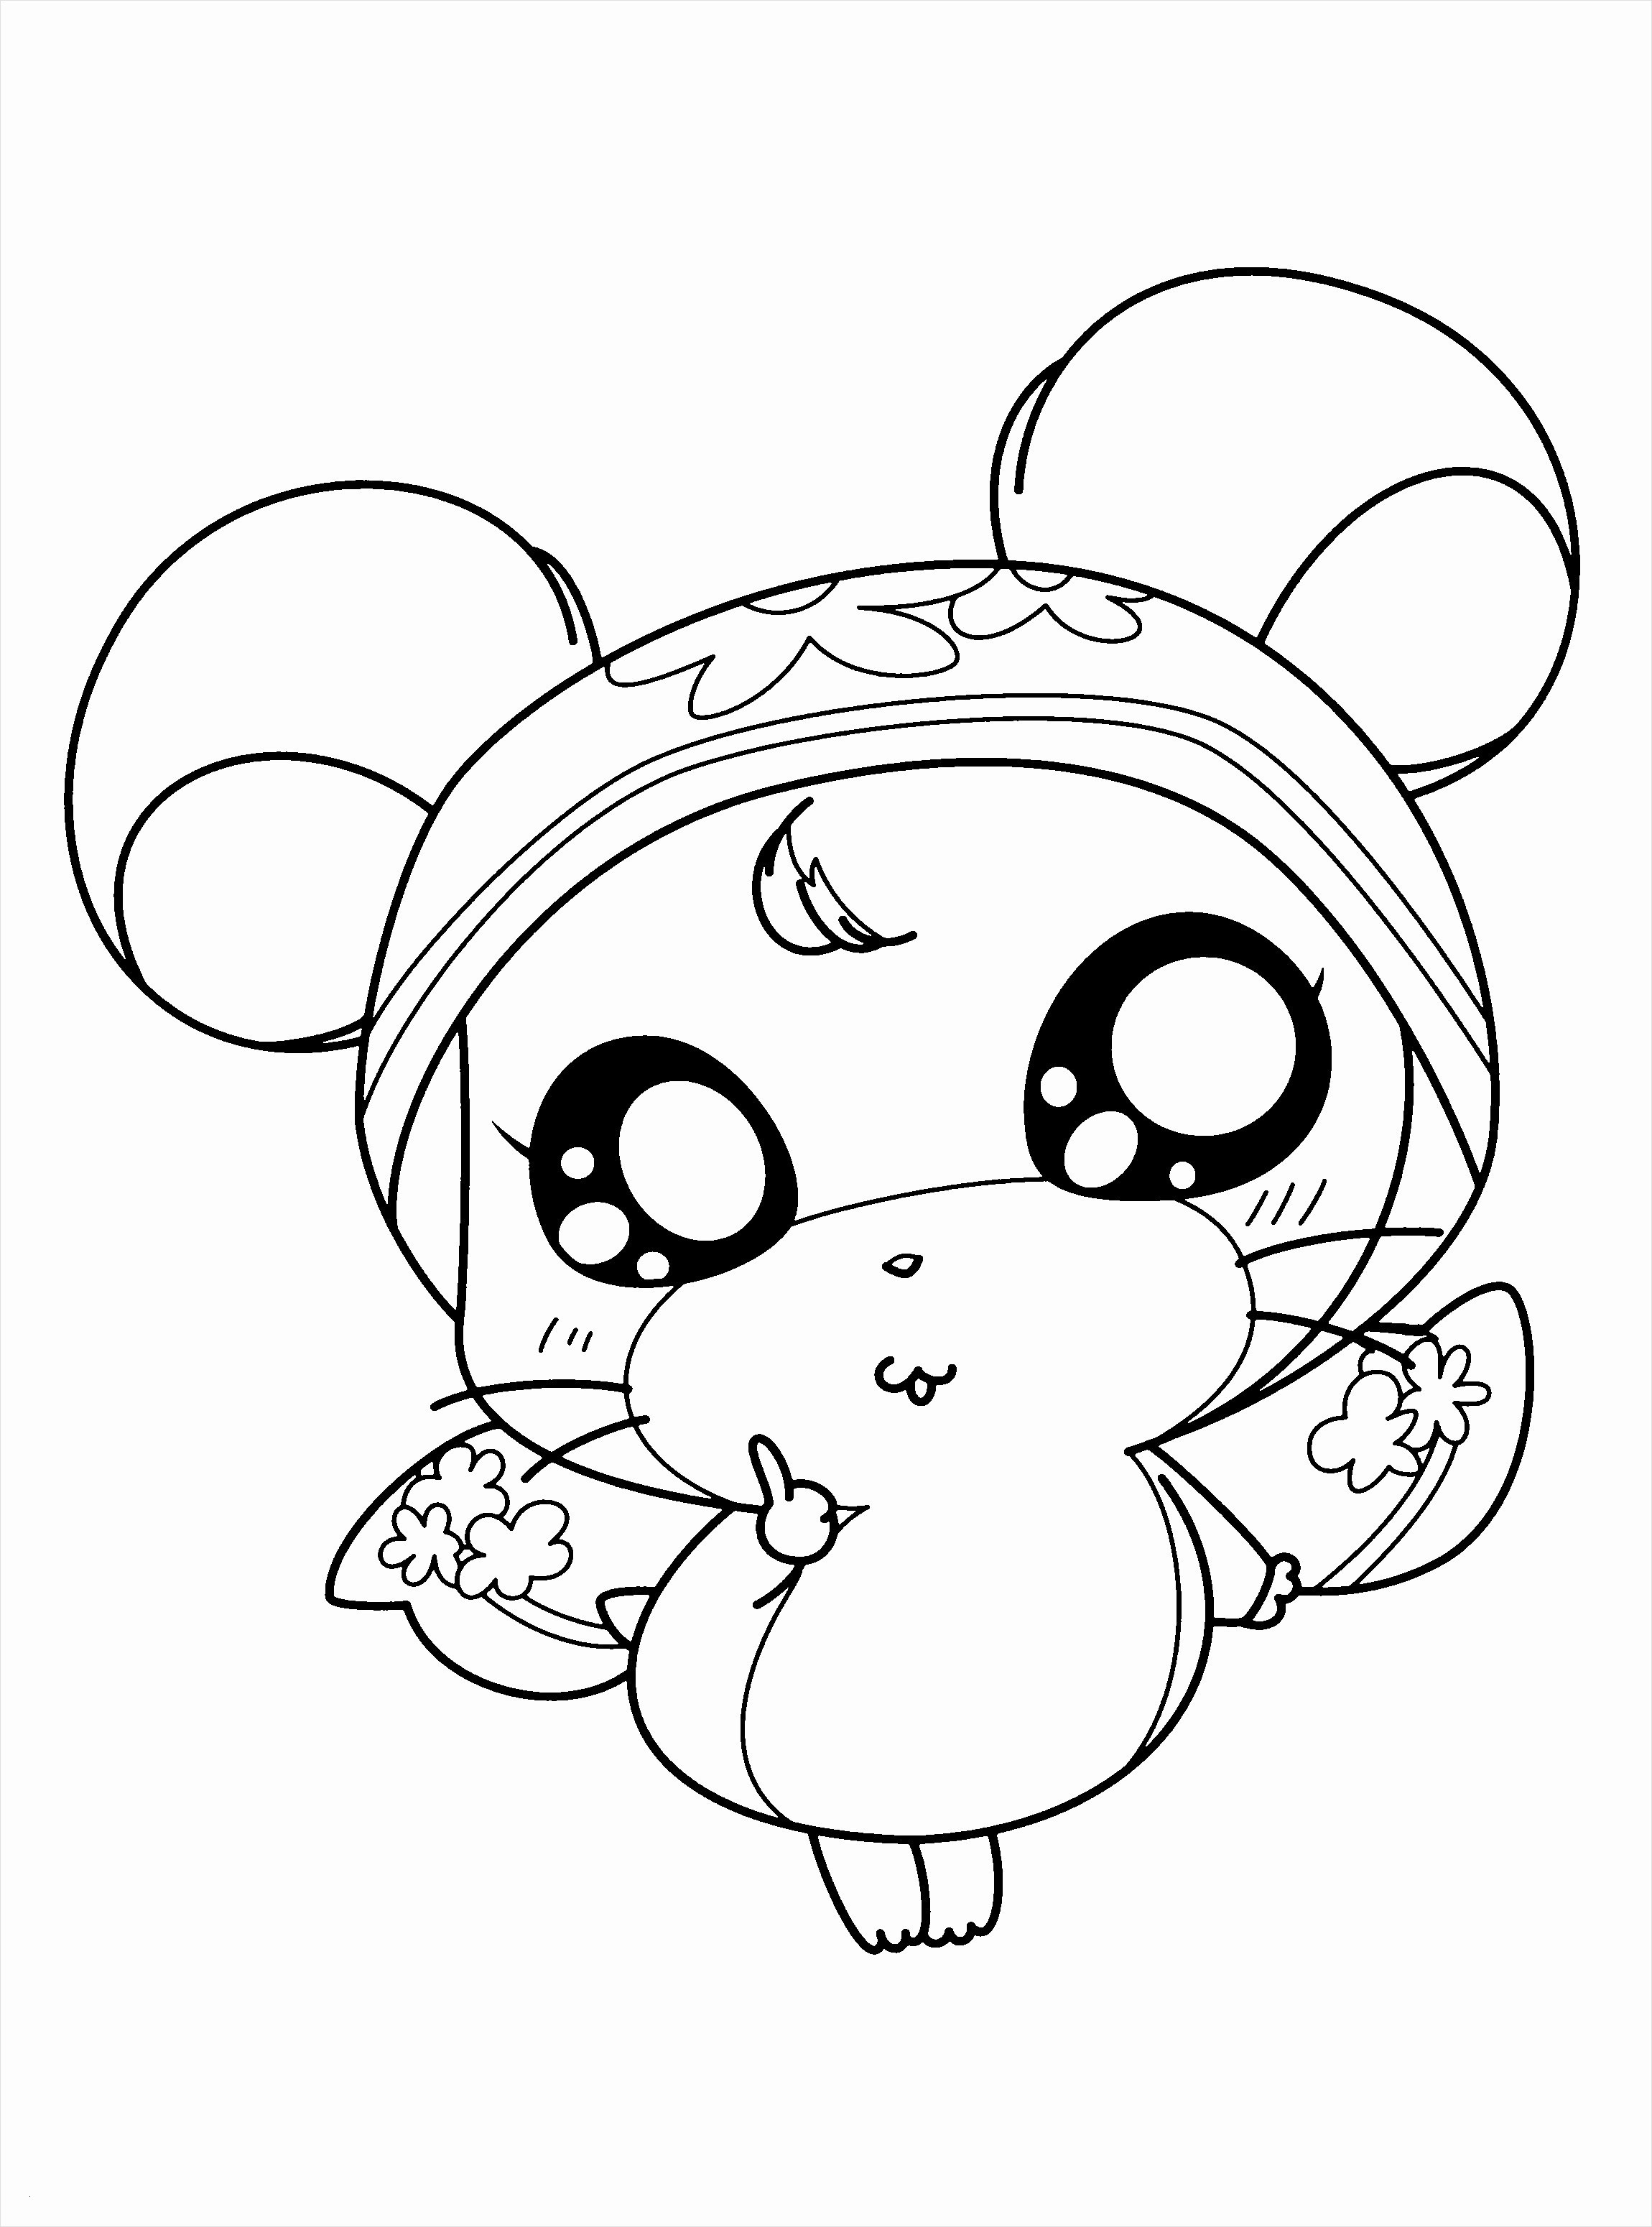 19 Royalty Free Coloring Pages Download Coloring Sheets